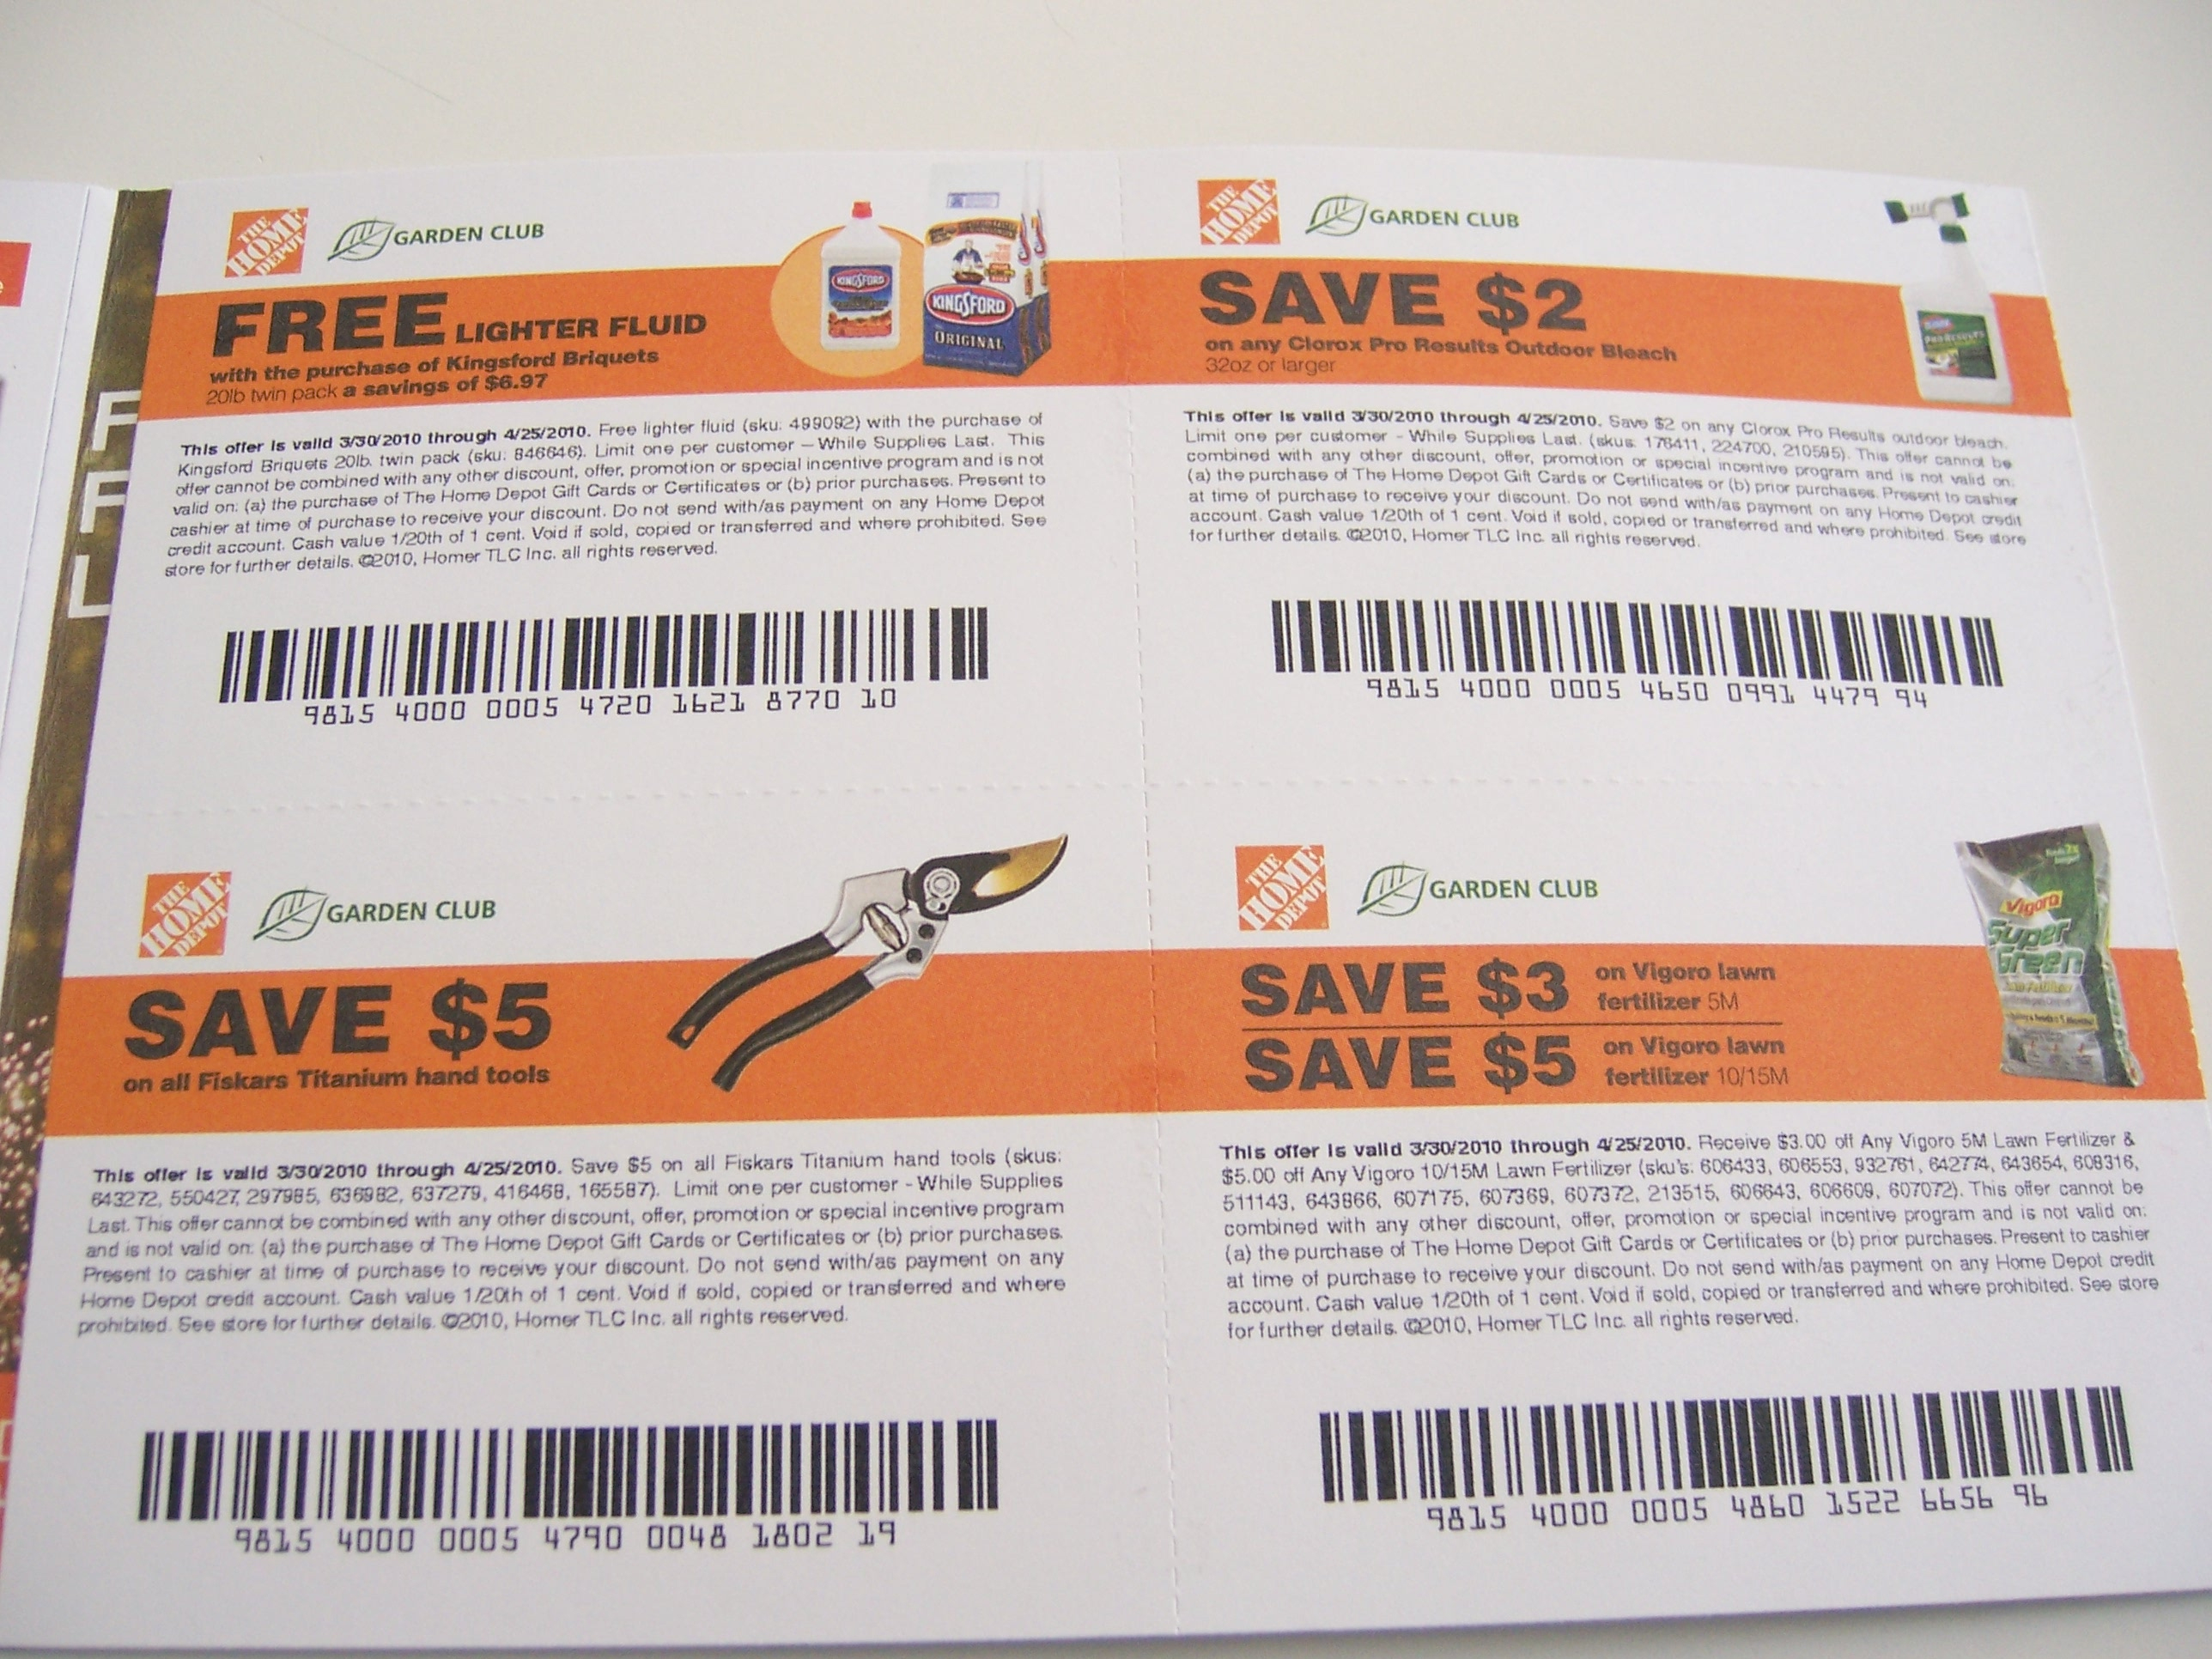 Home-Depot-Coupons-Tools - Free Printable Home Depot Coupons